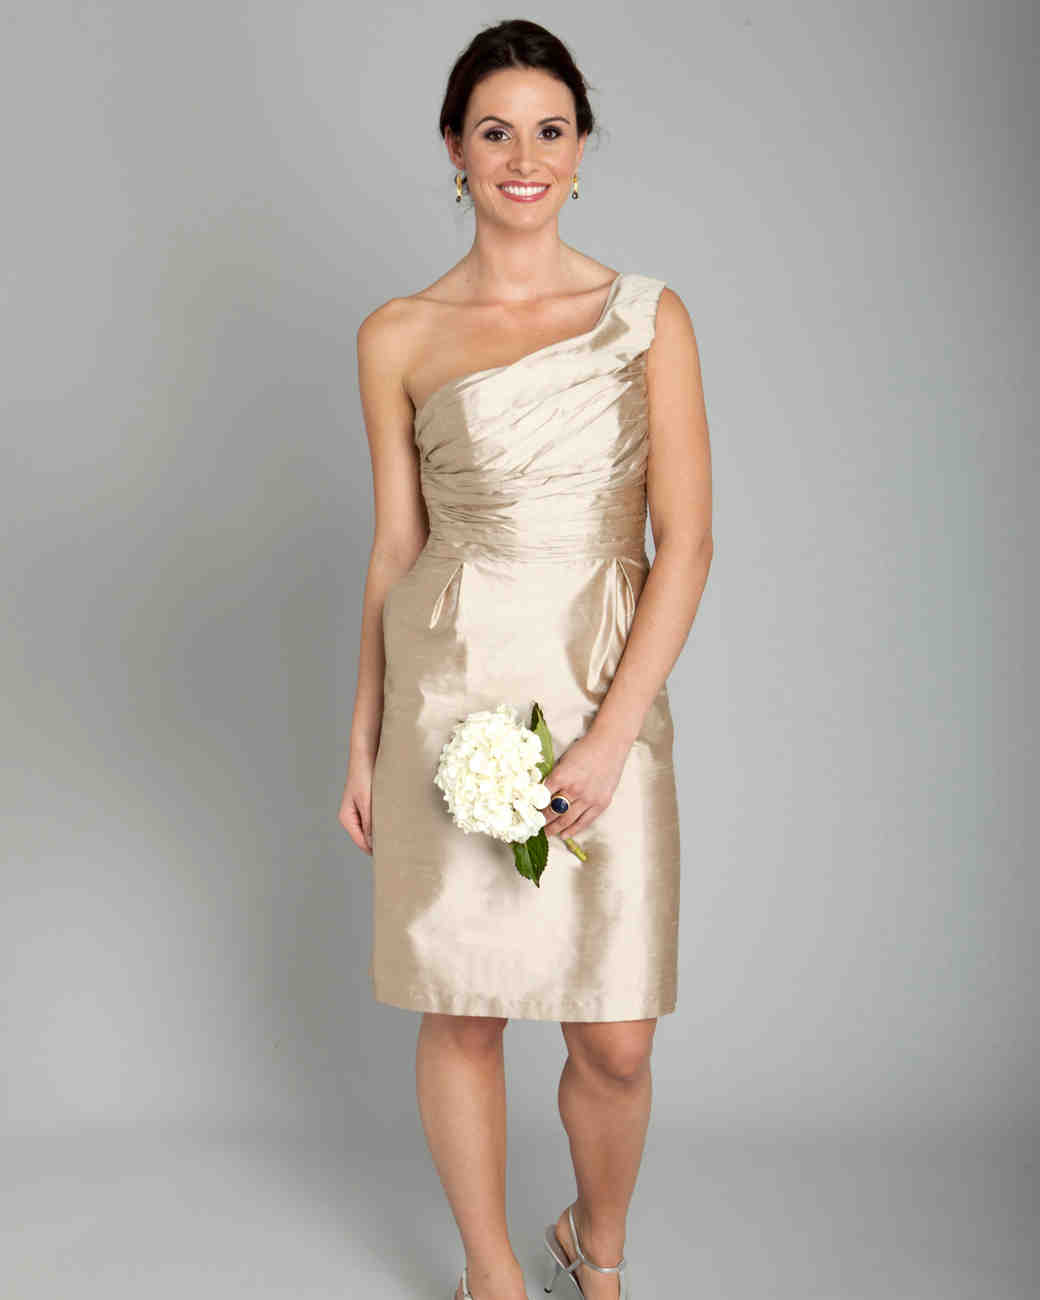 Bridesmaid Dresses: Champagne Bridesmaid Dresses